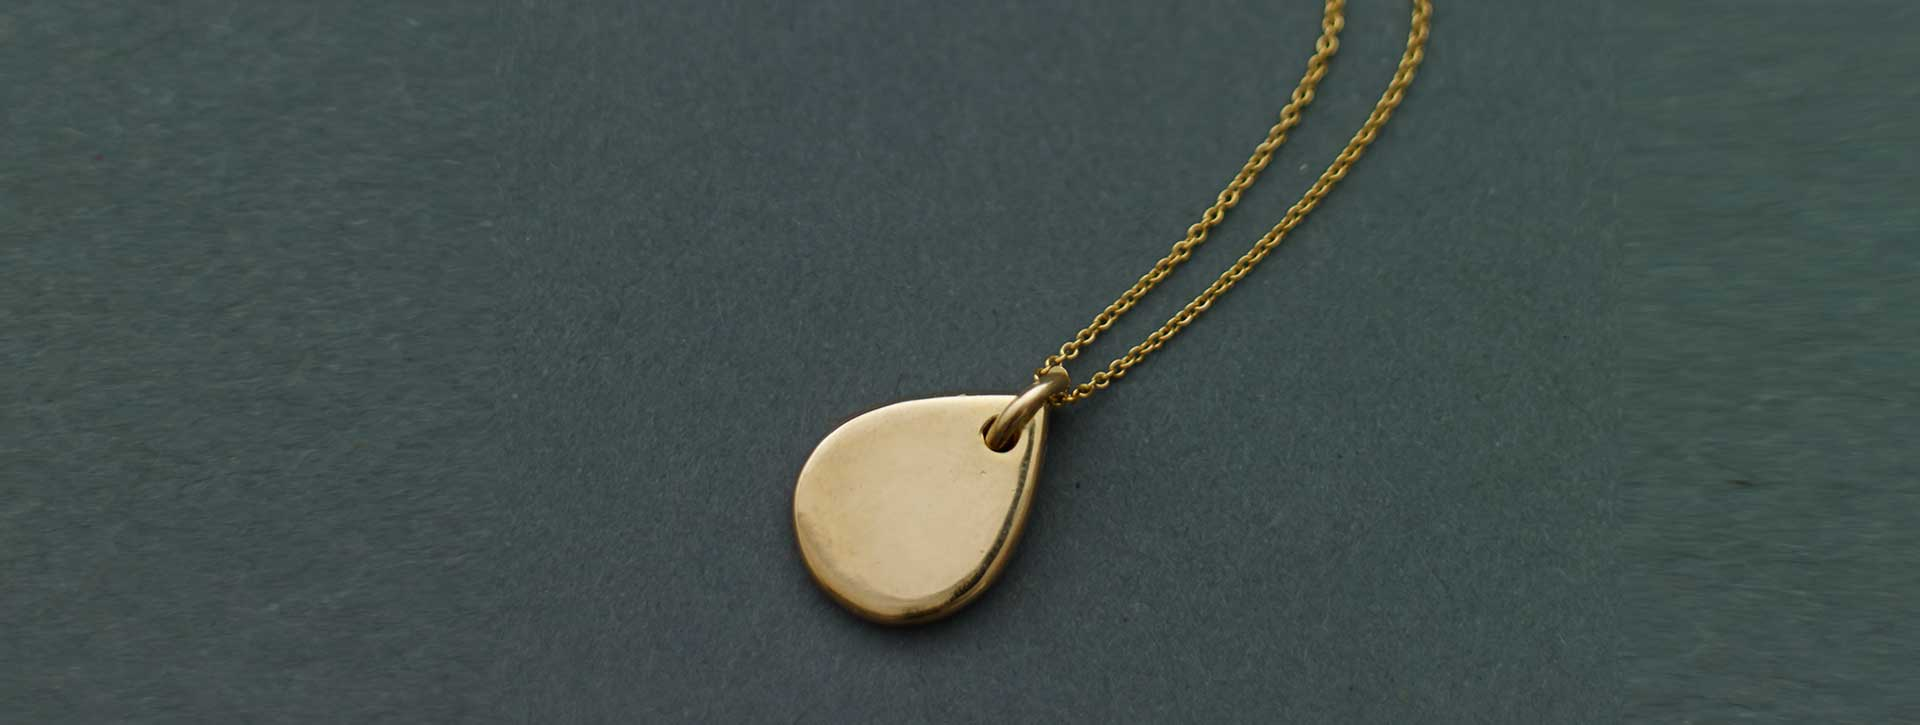 drop necklace 18k gold plated